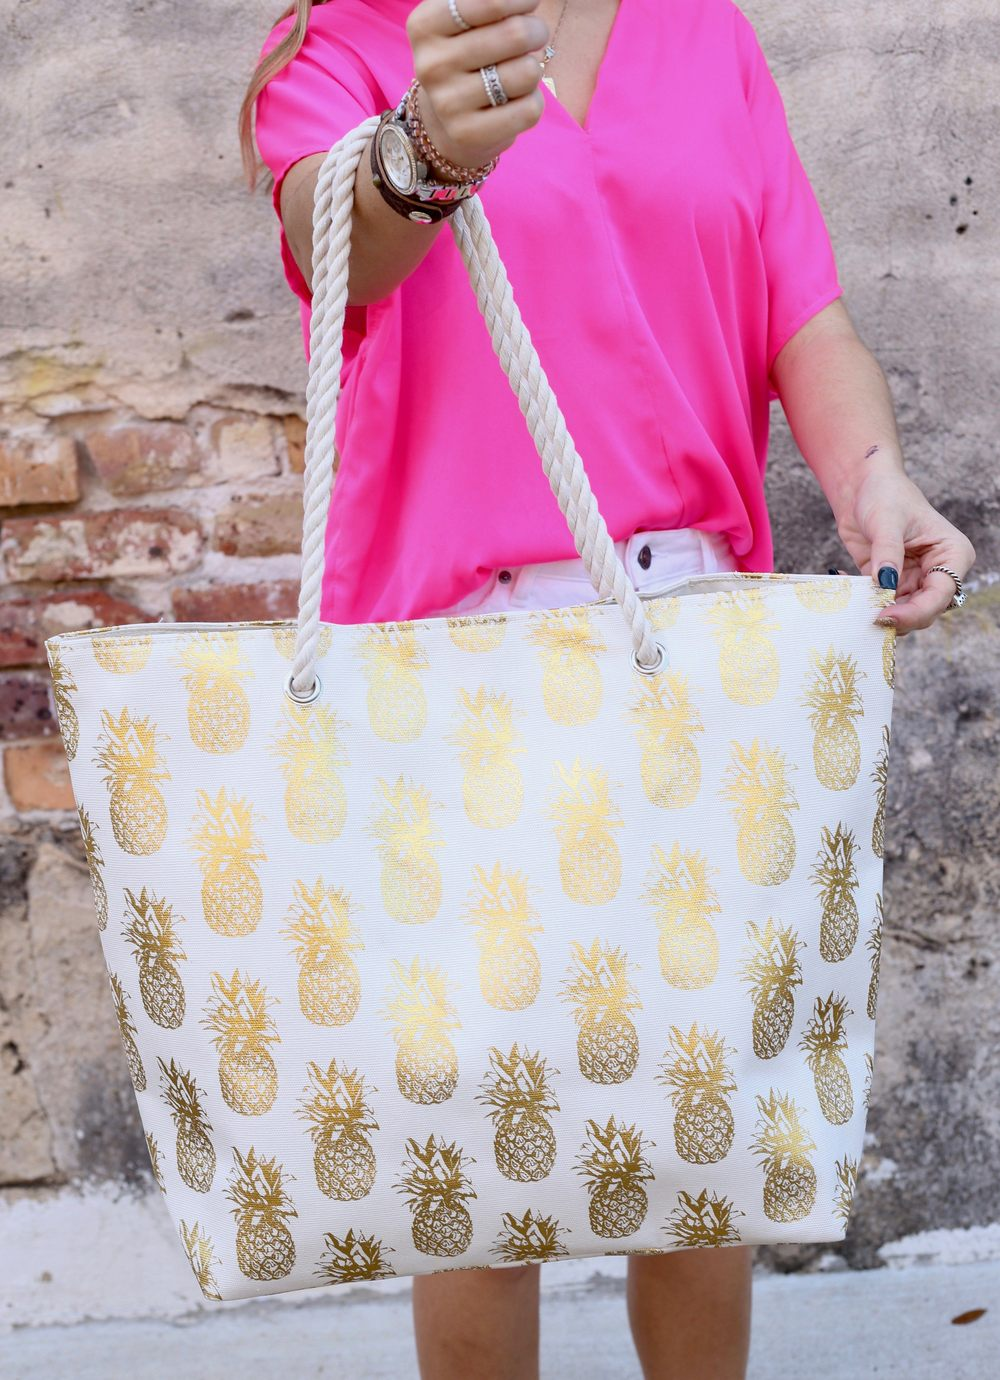 Foil Pineapple Tote Bag With Rope Handles White